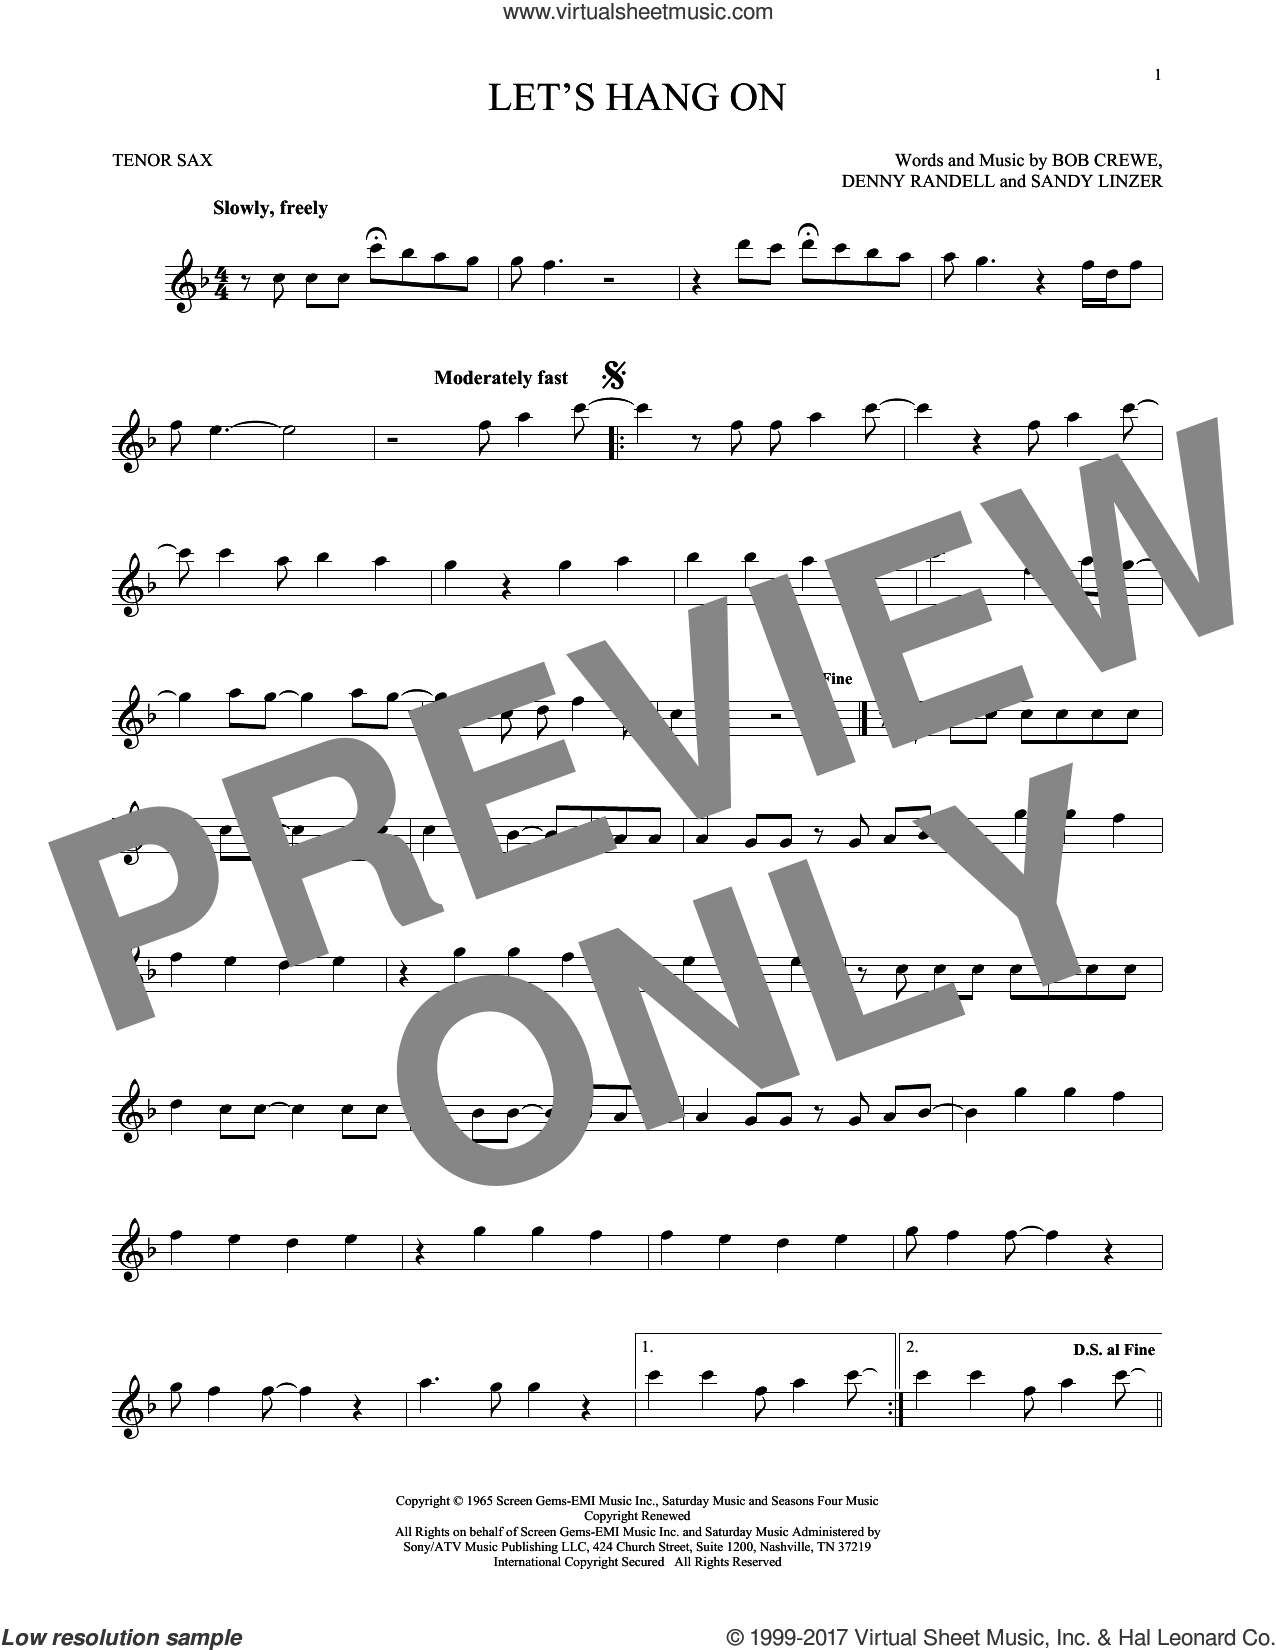 Let's Hang On sheet music for tenor saxophone solo ( Sax) by The 4 Seasons, Manhattan Transfer, Bob Crewe and SANDY LINZER. Score Image Preview.